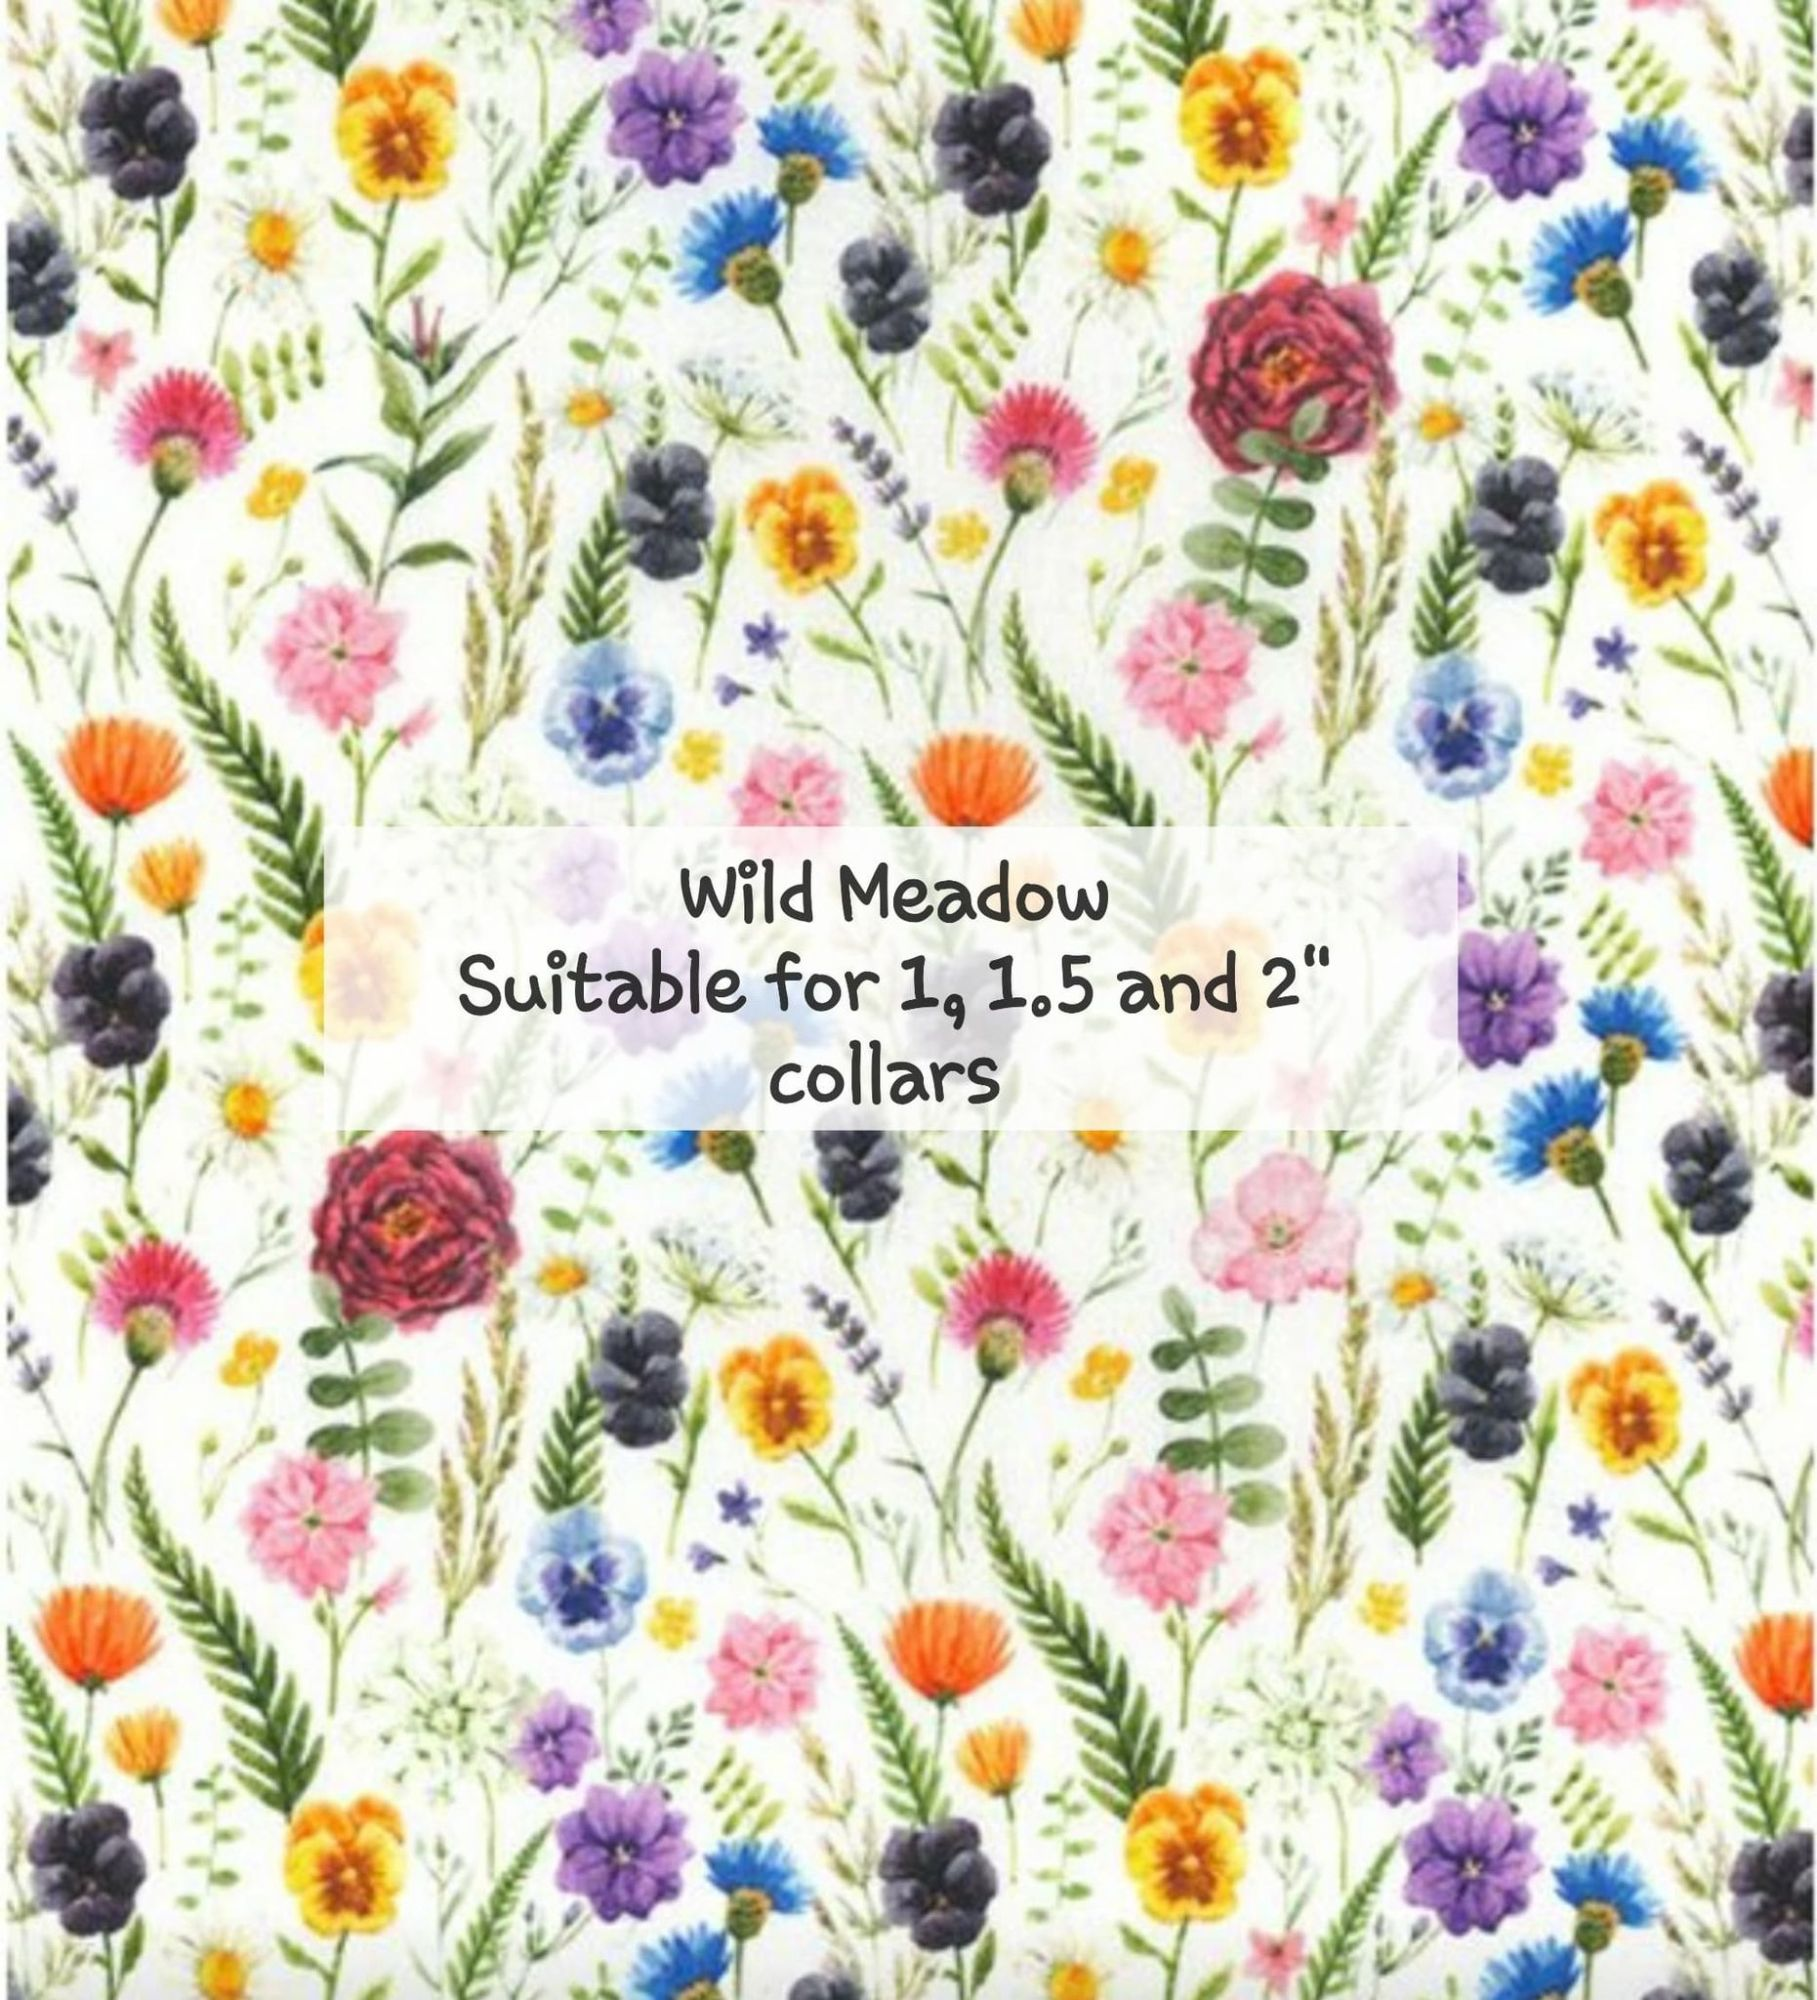 Wild Meadow - Suitable for 1, 1.5 and 2 inch collars